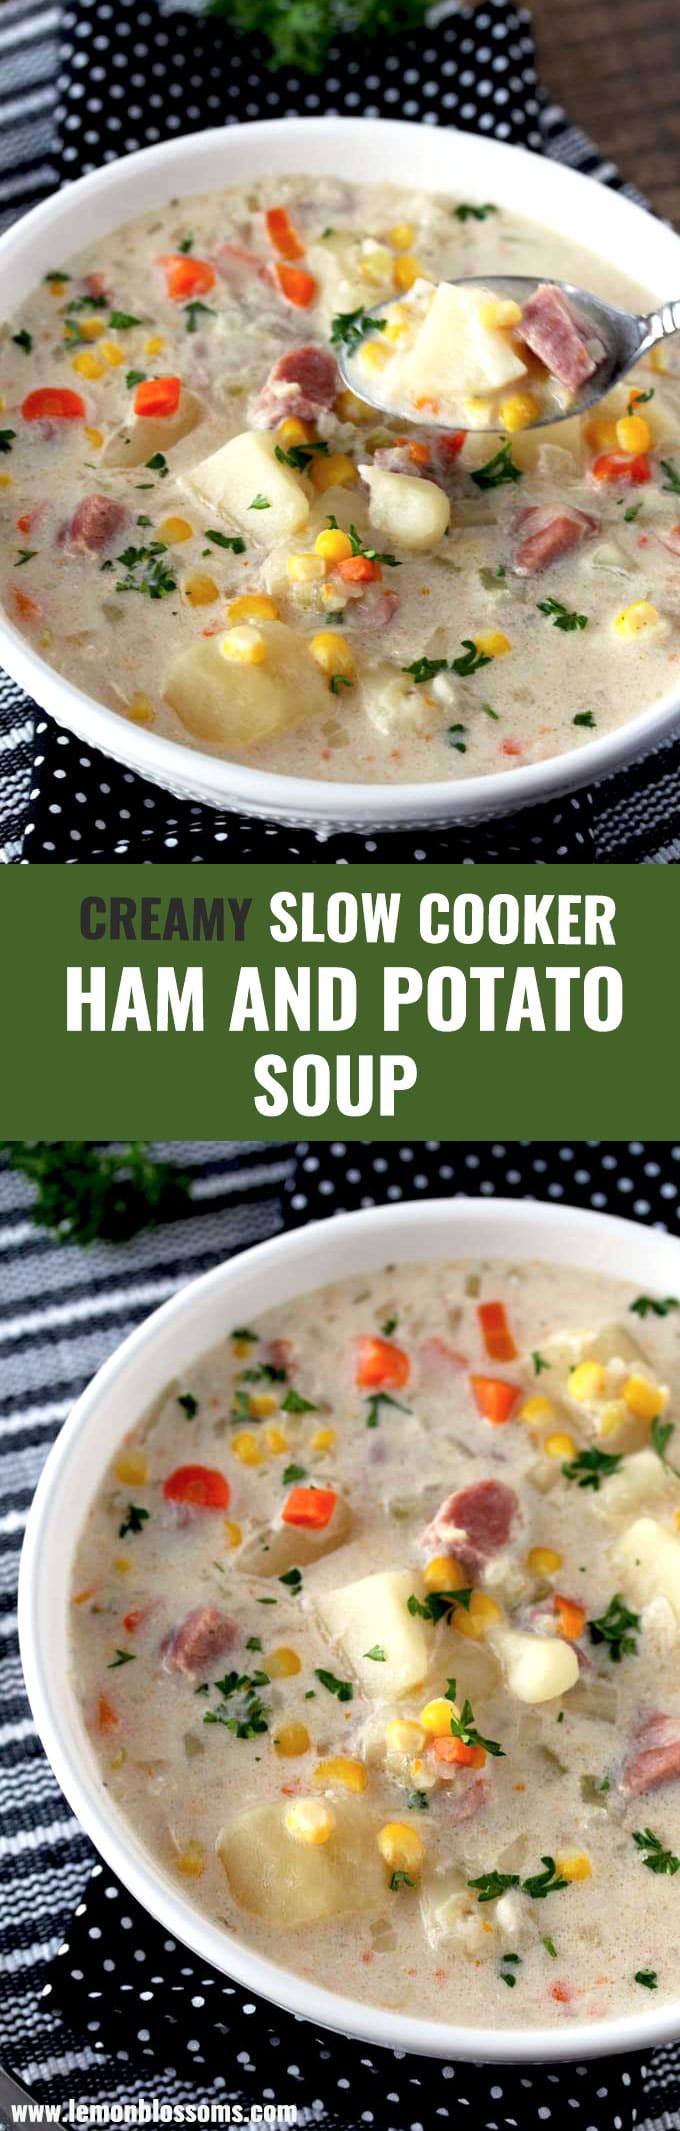 This Slow Cooker Ham and Potato Soup is hearty, creamy and delicious. Loaded with ham, potatoes and veggies in a rich and tasty broth . Minimal prep, dump and go, easy crock pot soup! #soup #glutenfree #slowcooker #crockpot #easy #potato #ham #creamy #best